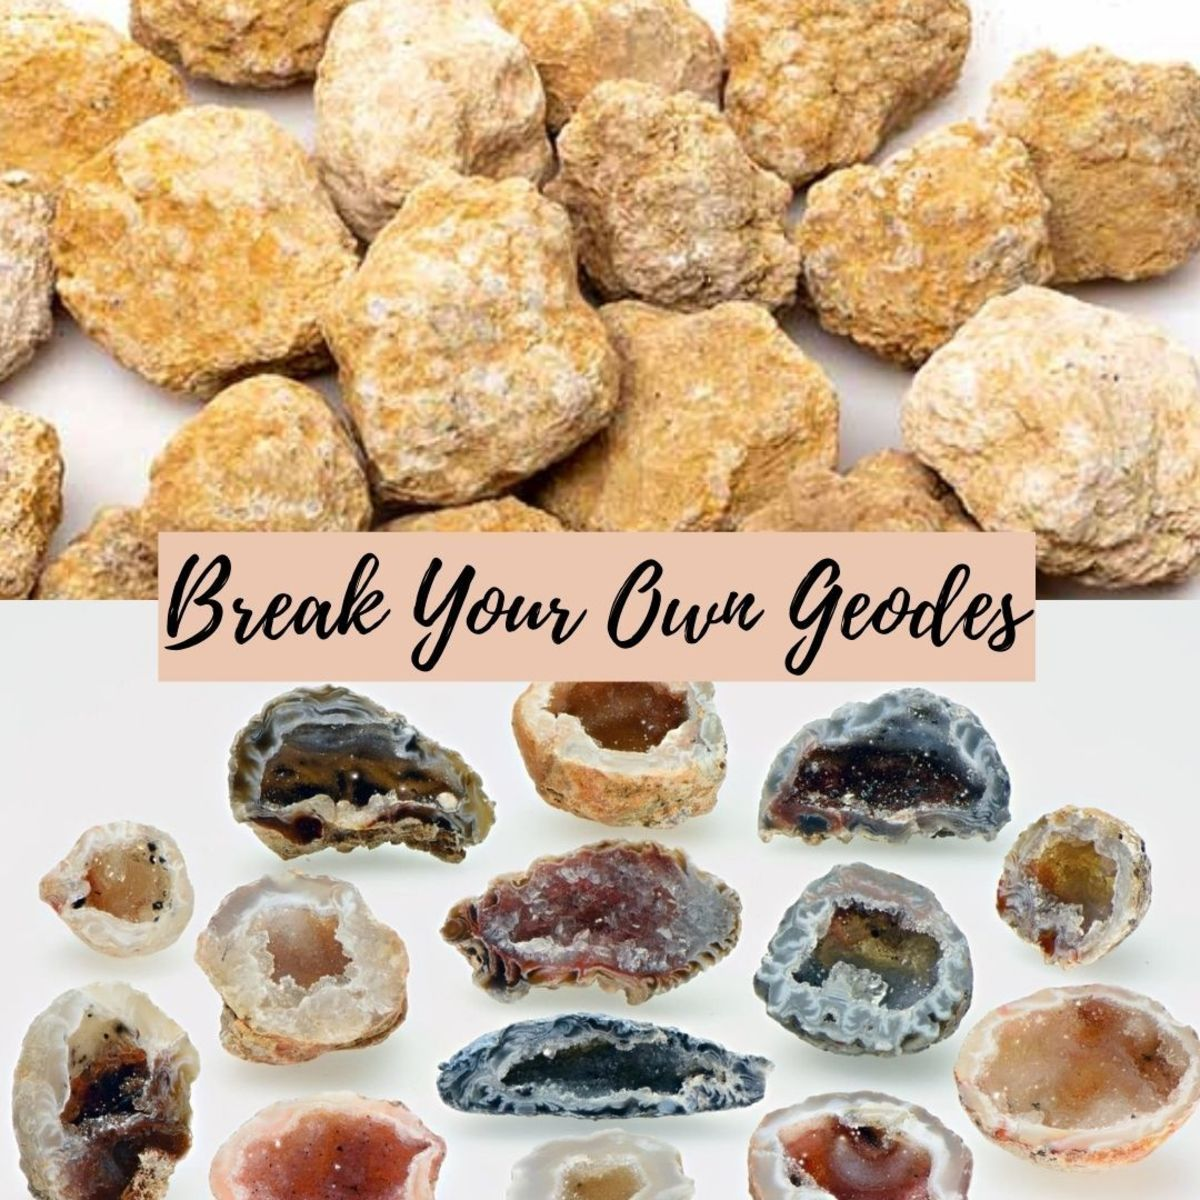 Break your own geodes and see what crystals lay inside